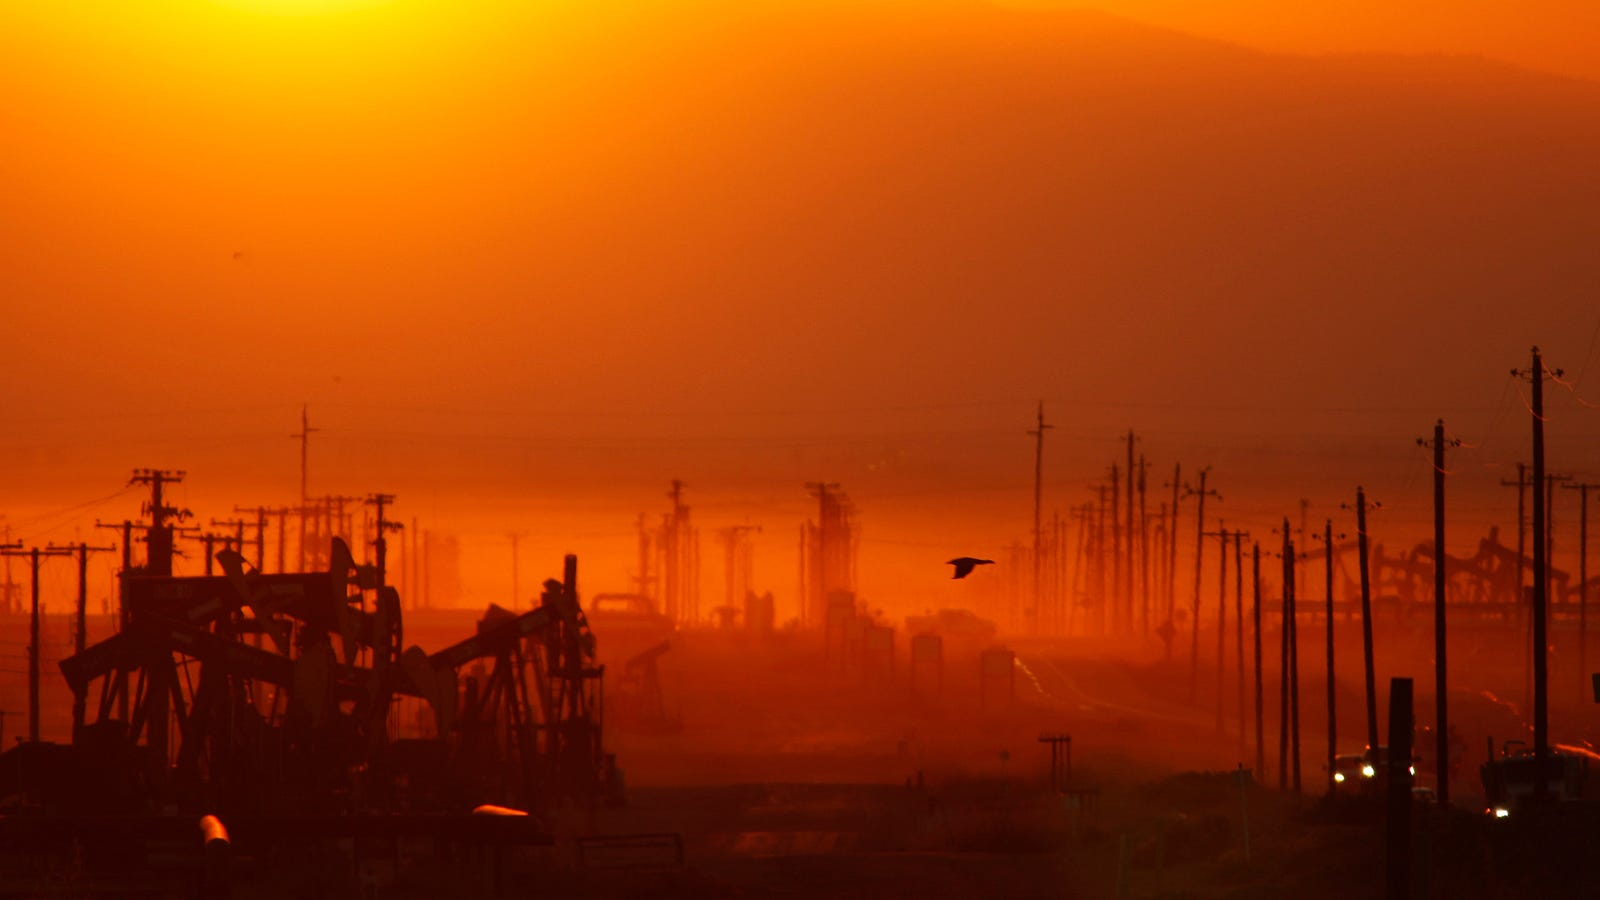 The EPA Updated its Fracking Pages With Oil and Gas Industry Talking Points